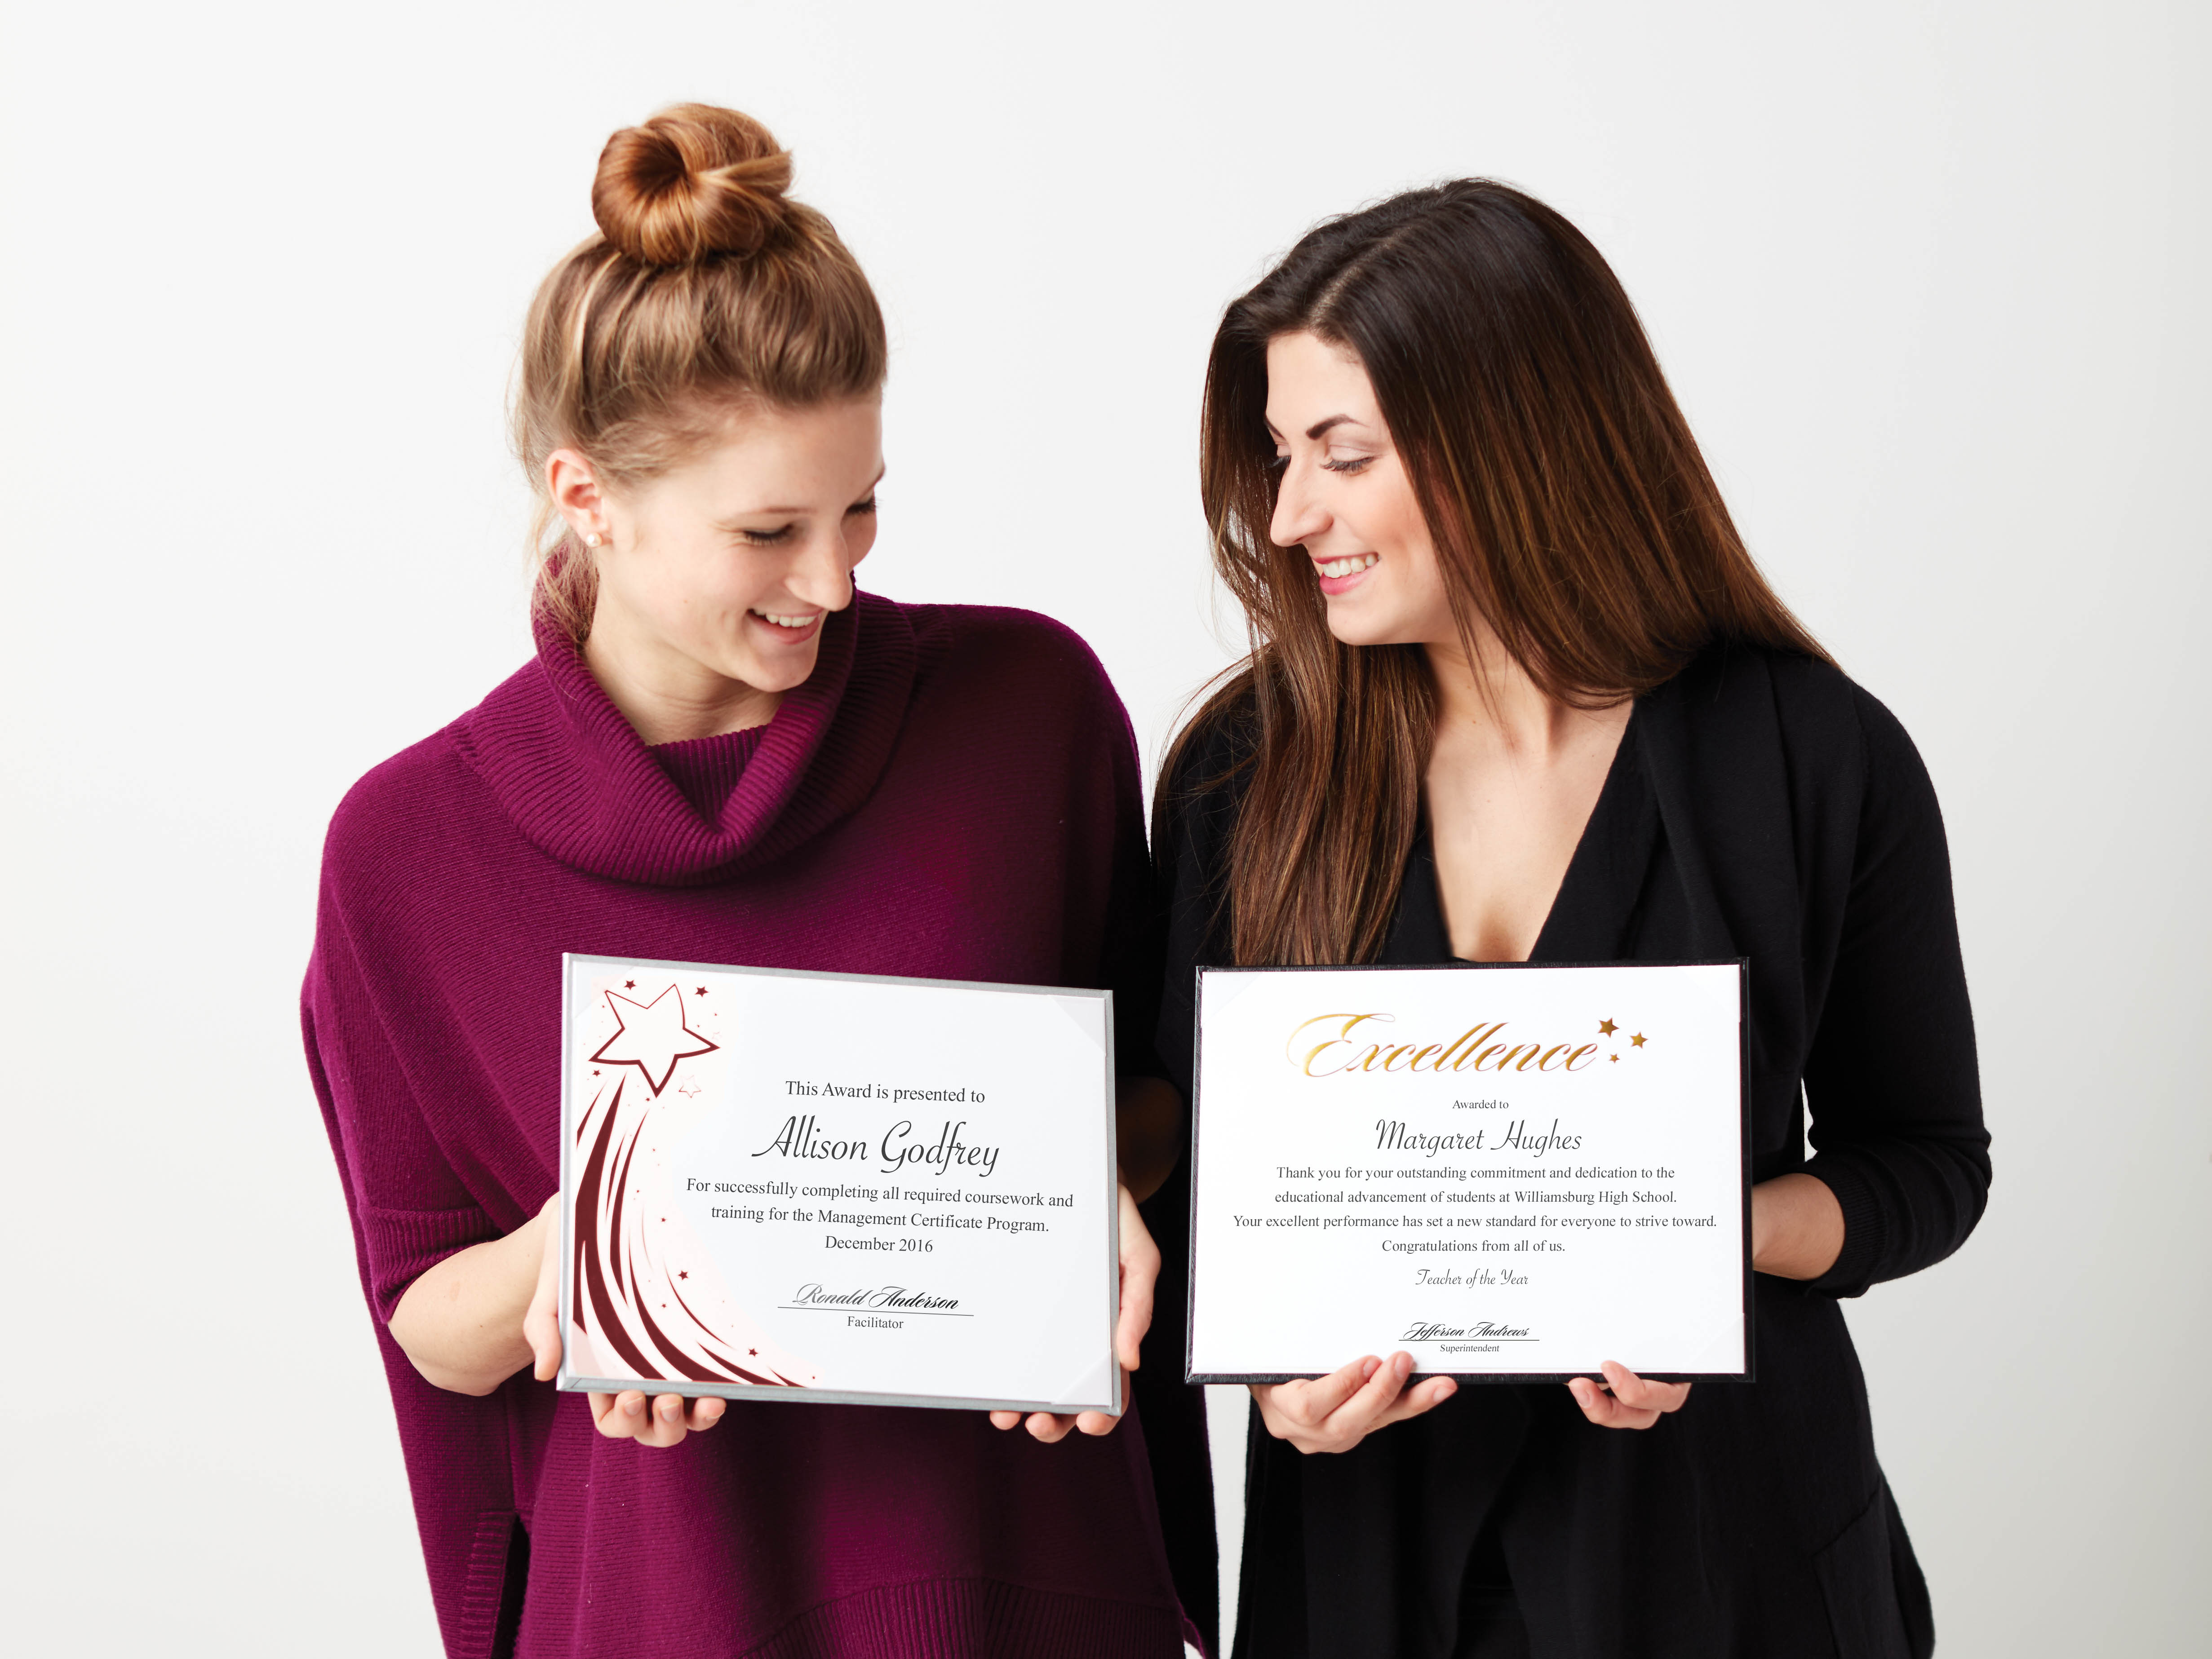 Two Young Women Holding Gold Foil Certificate Papers in Frames